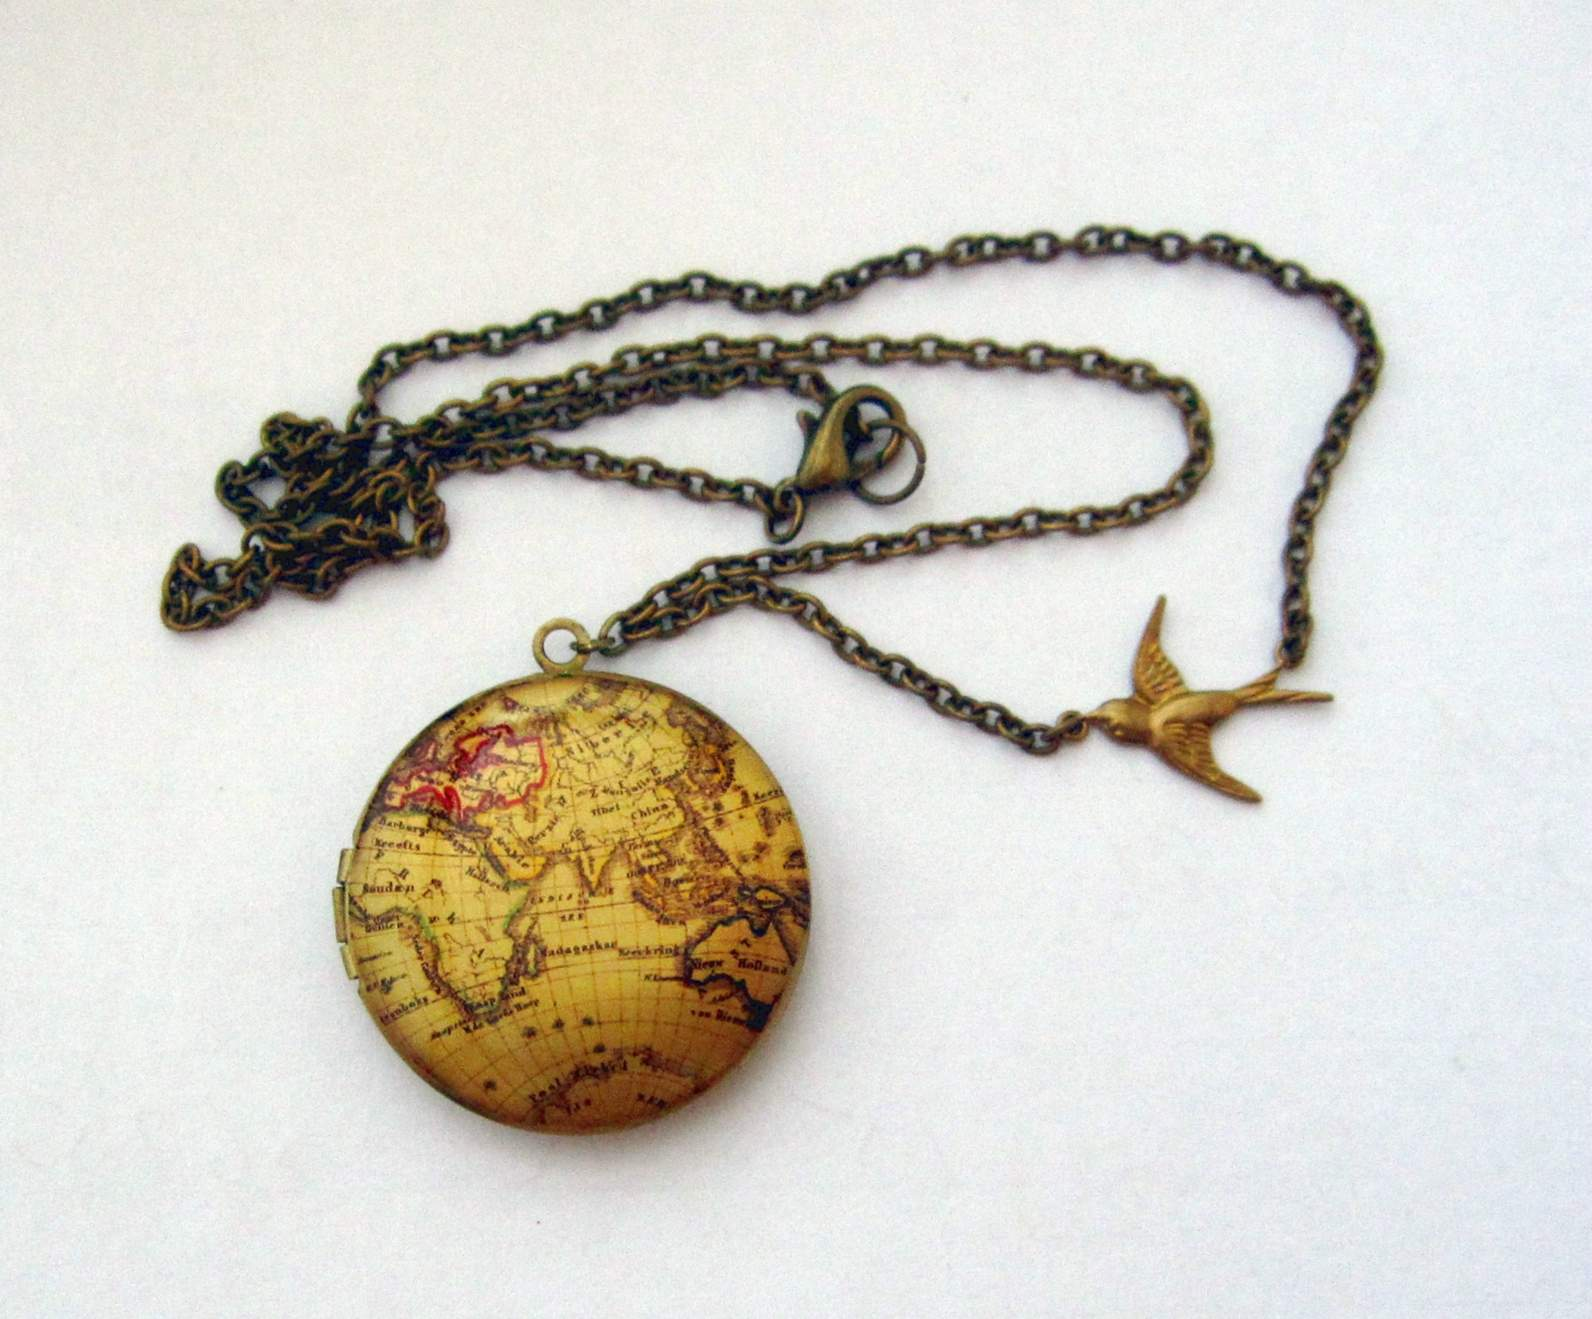 Old world map locket necklace felt old world map locket necklace previous gumiabroncs Gallery